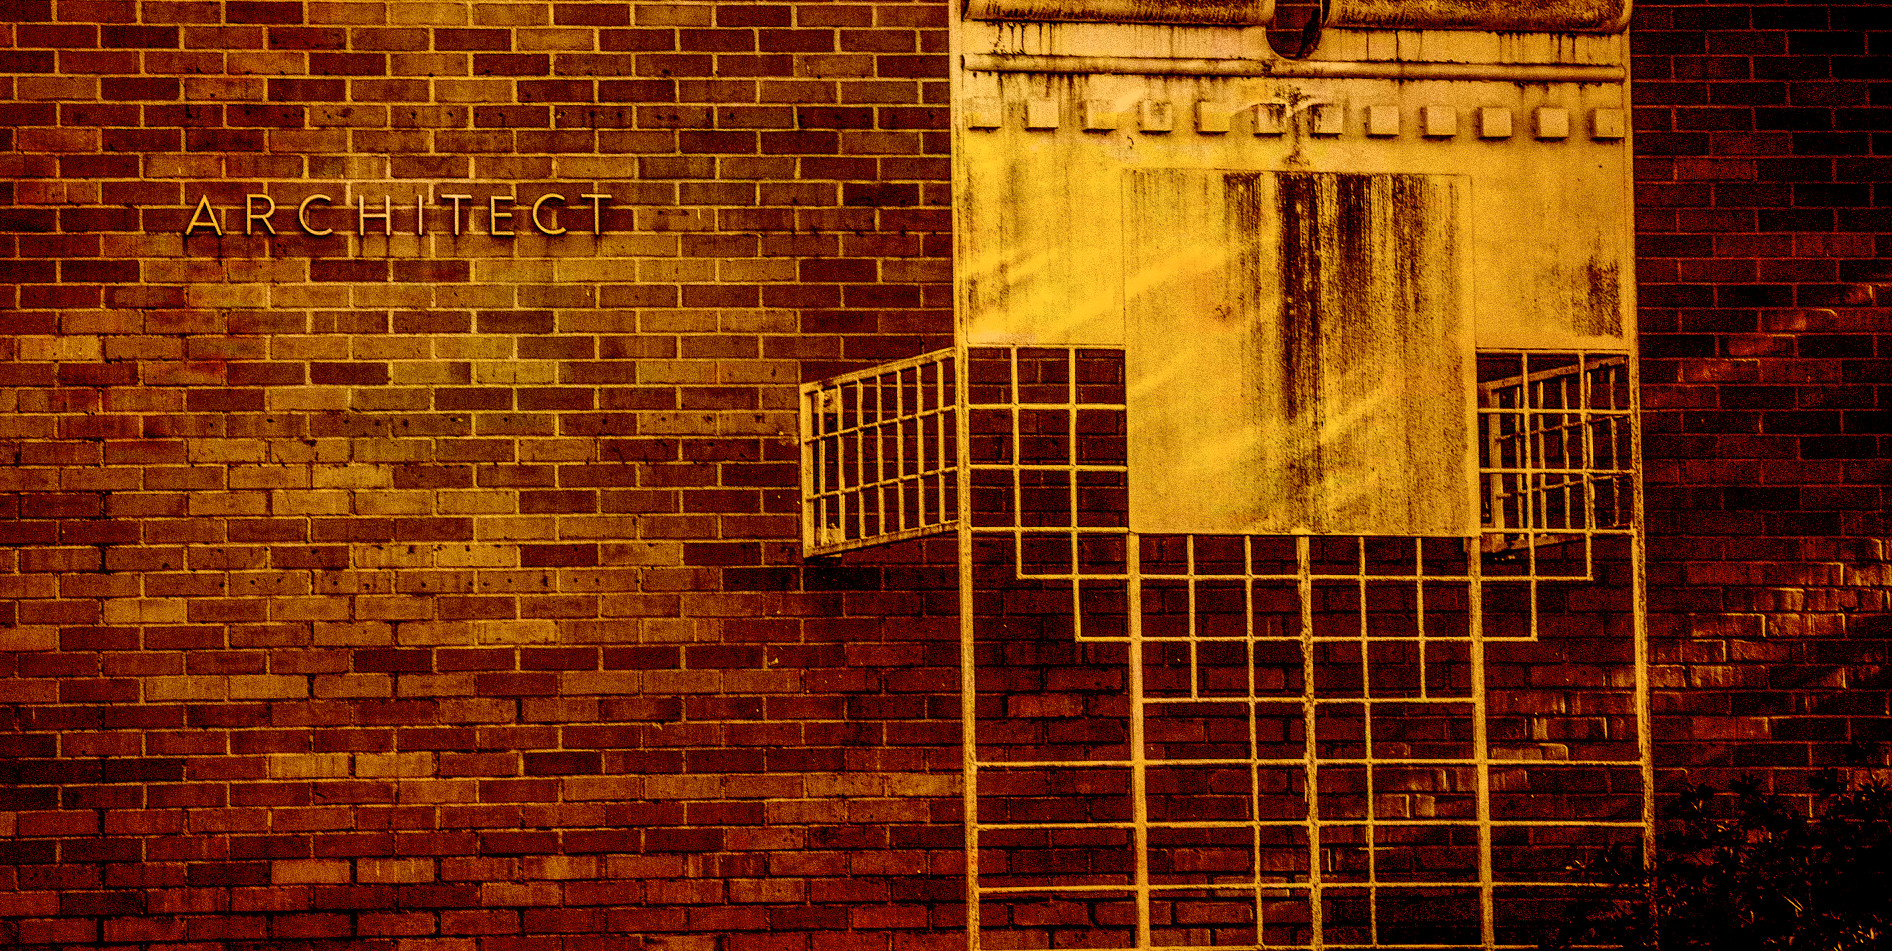 Architectual Detail Outside Closed Architect's Office Meridian Mississippi 2017.jpg